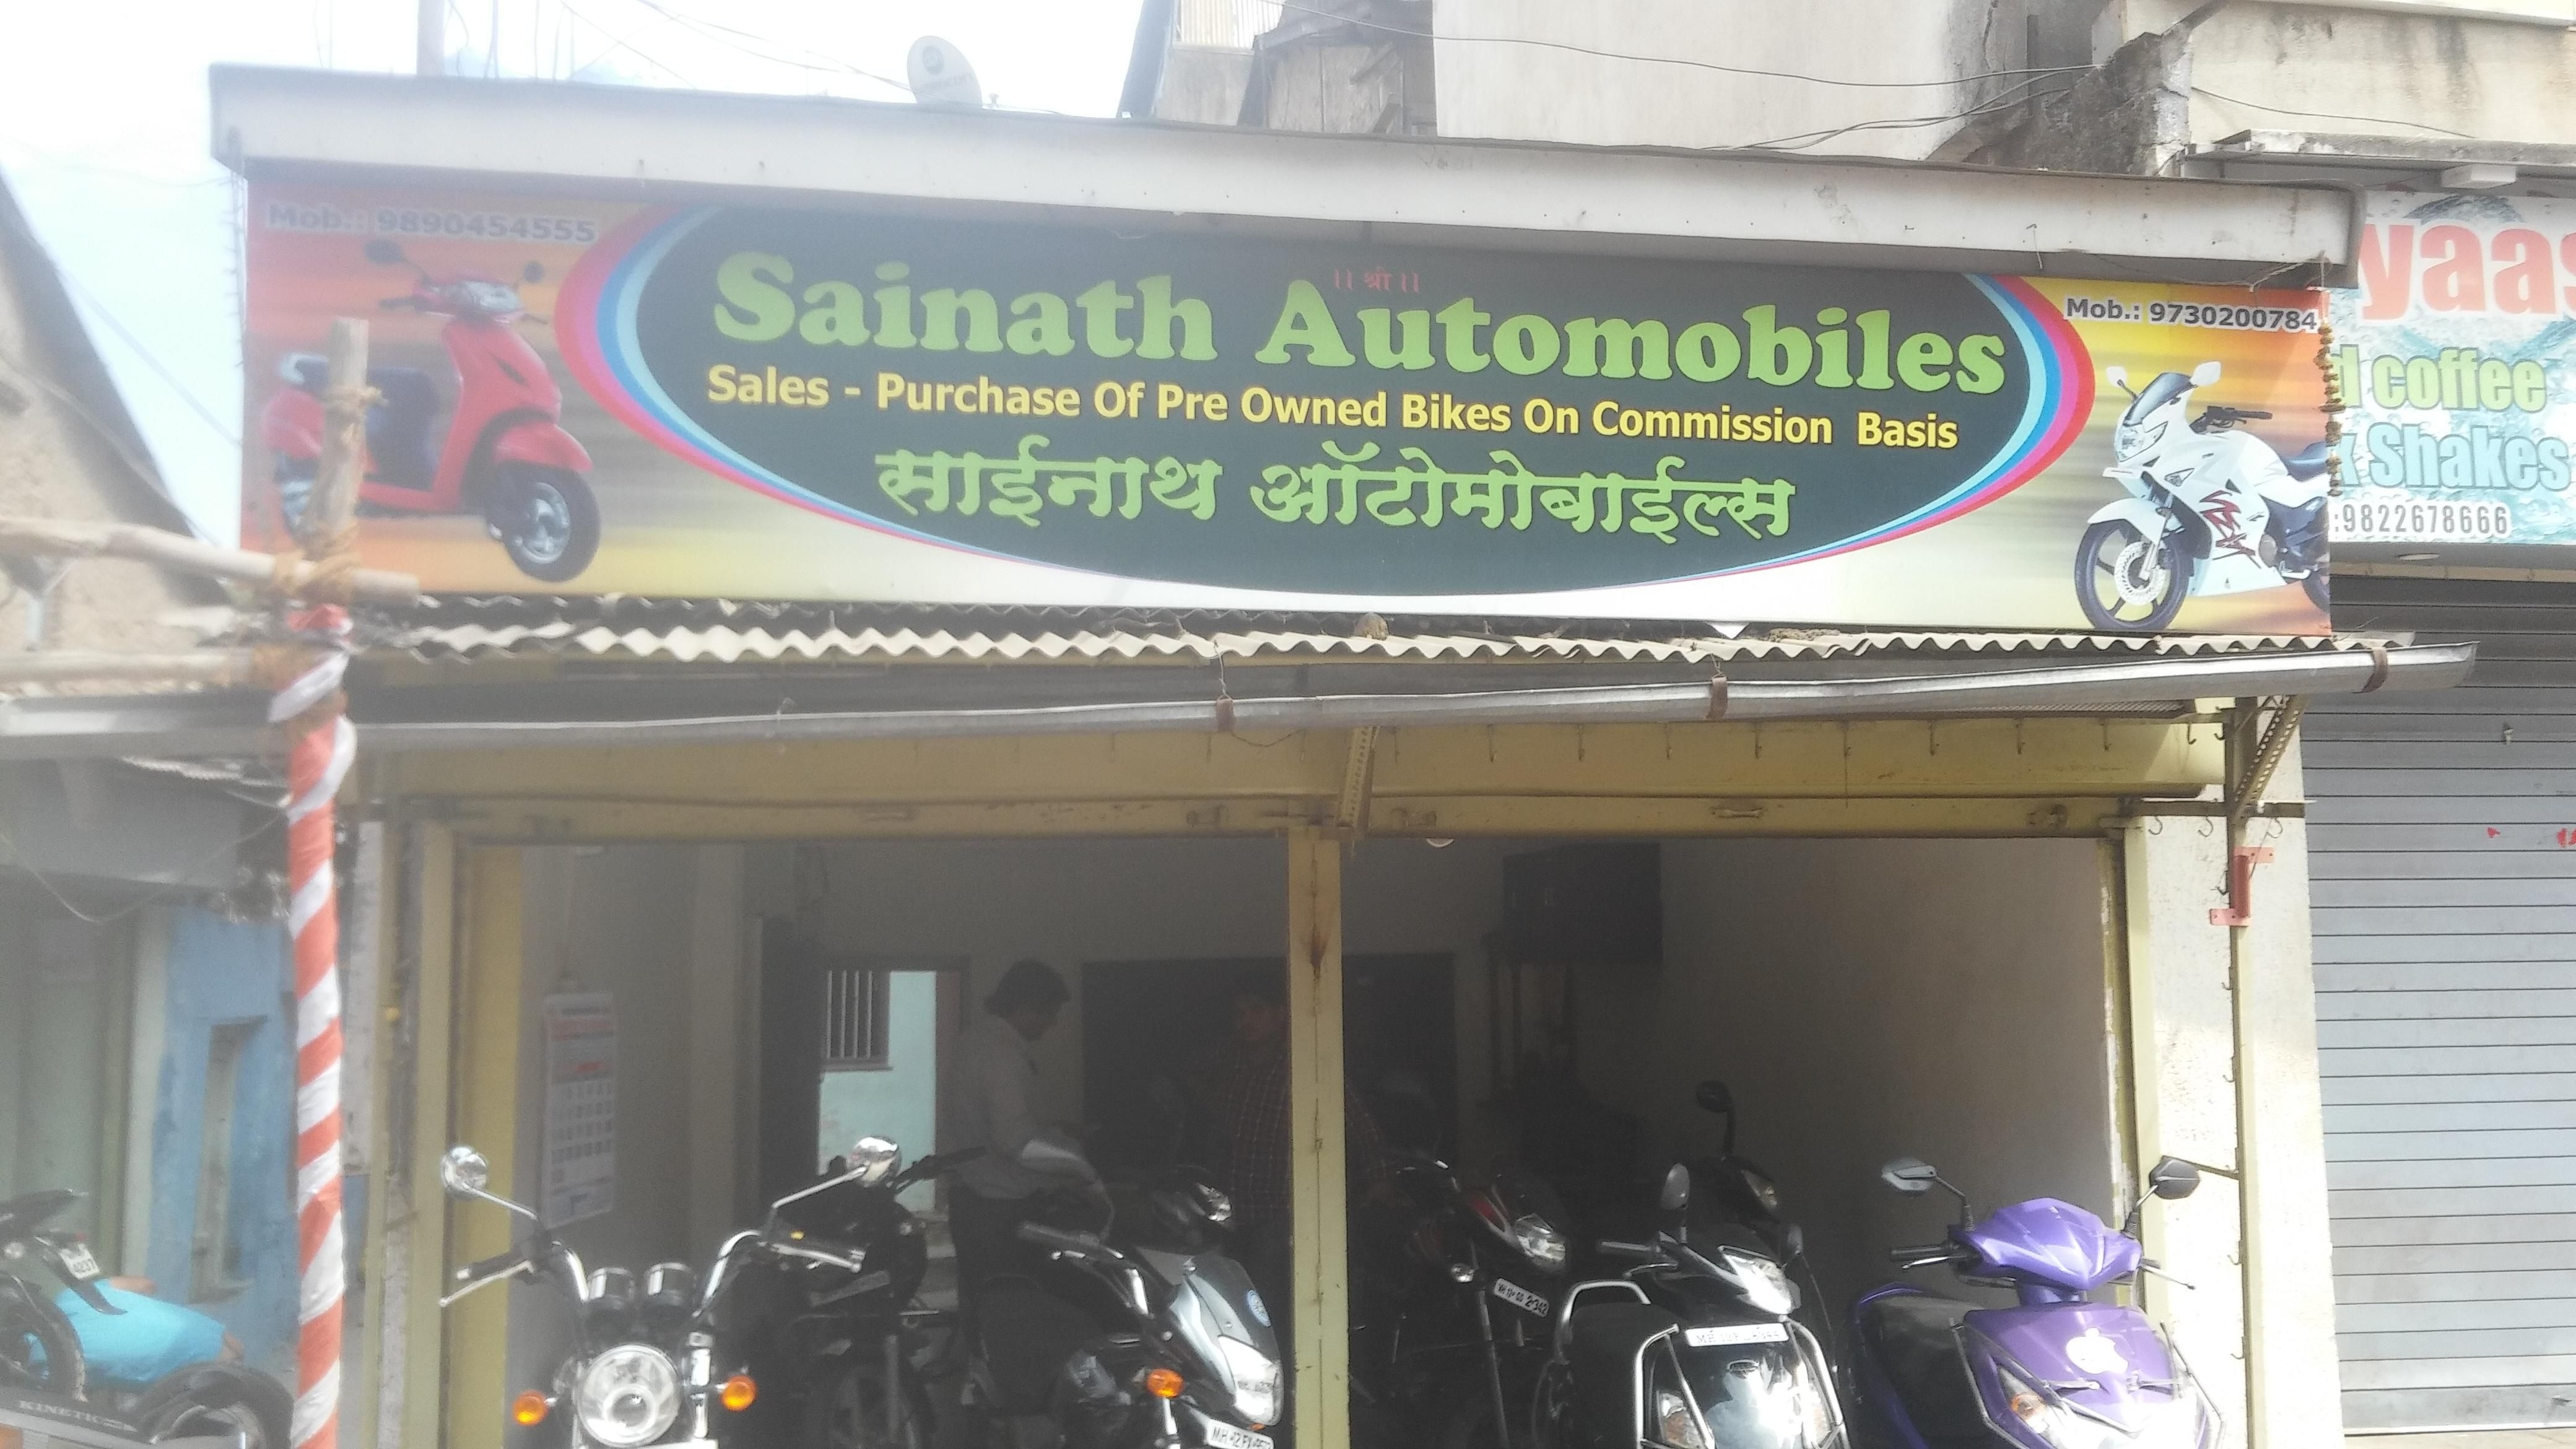 sainath automobiles bike